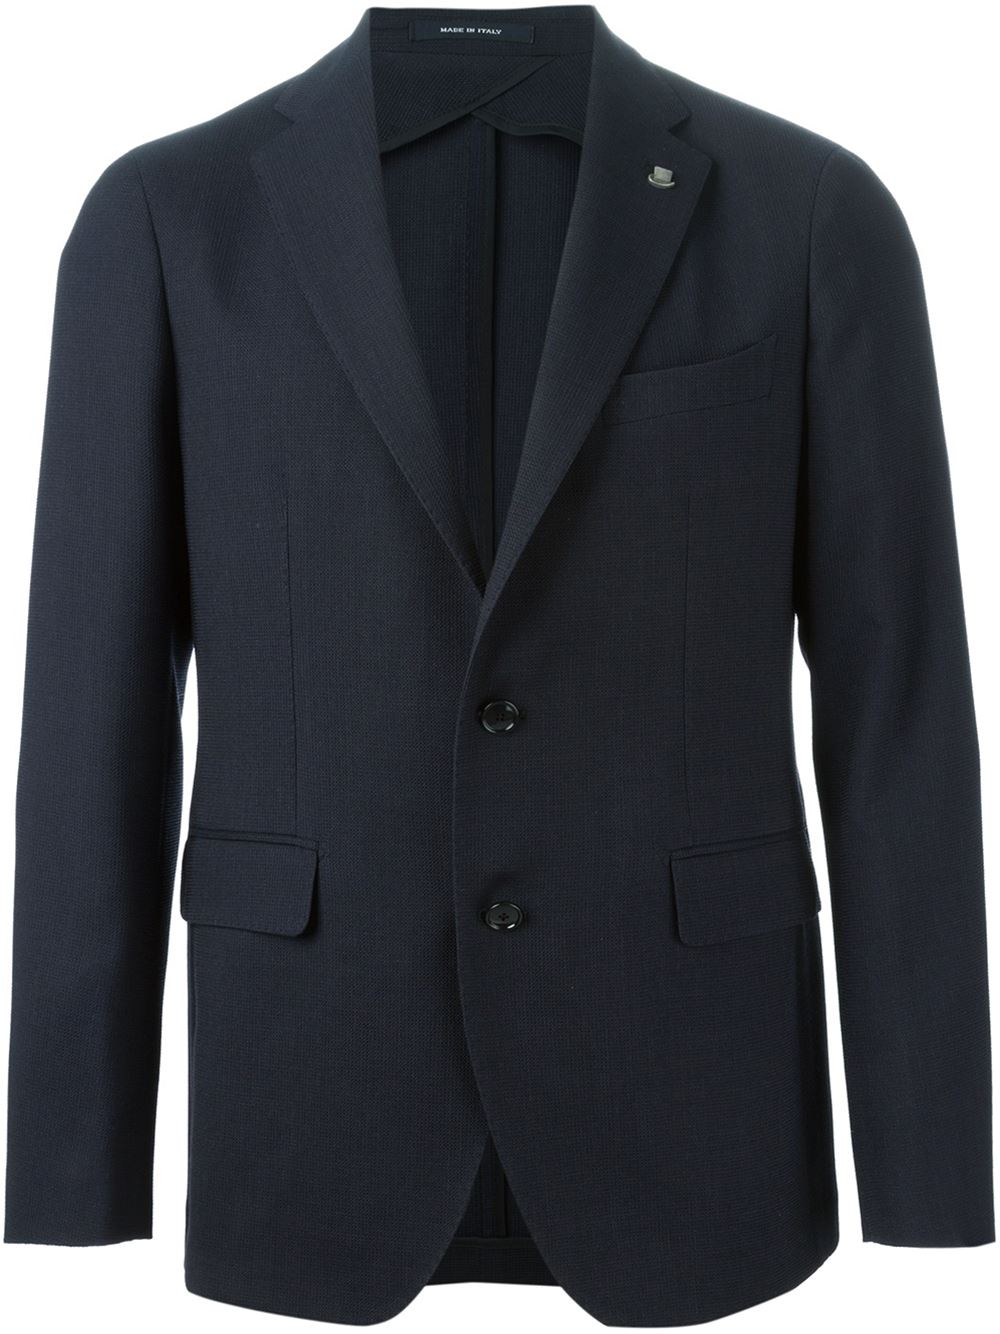 Shop affordable, unique double button blazer designed by top fashion designers worldwide. Discover more latest collections of Outerwear at inerloadsr5s.gq